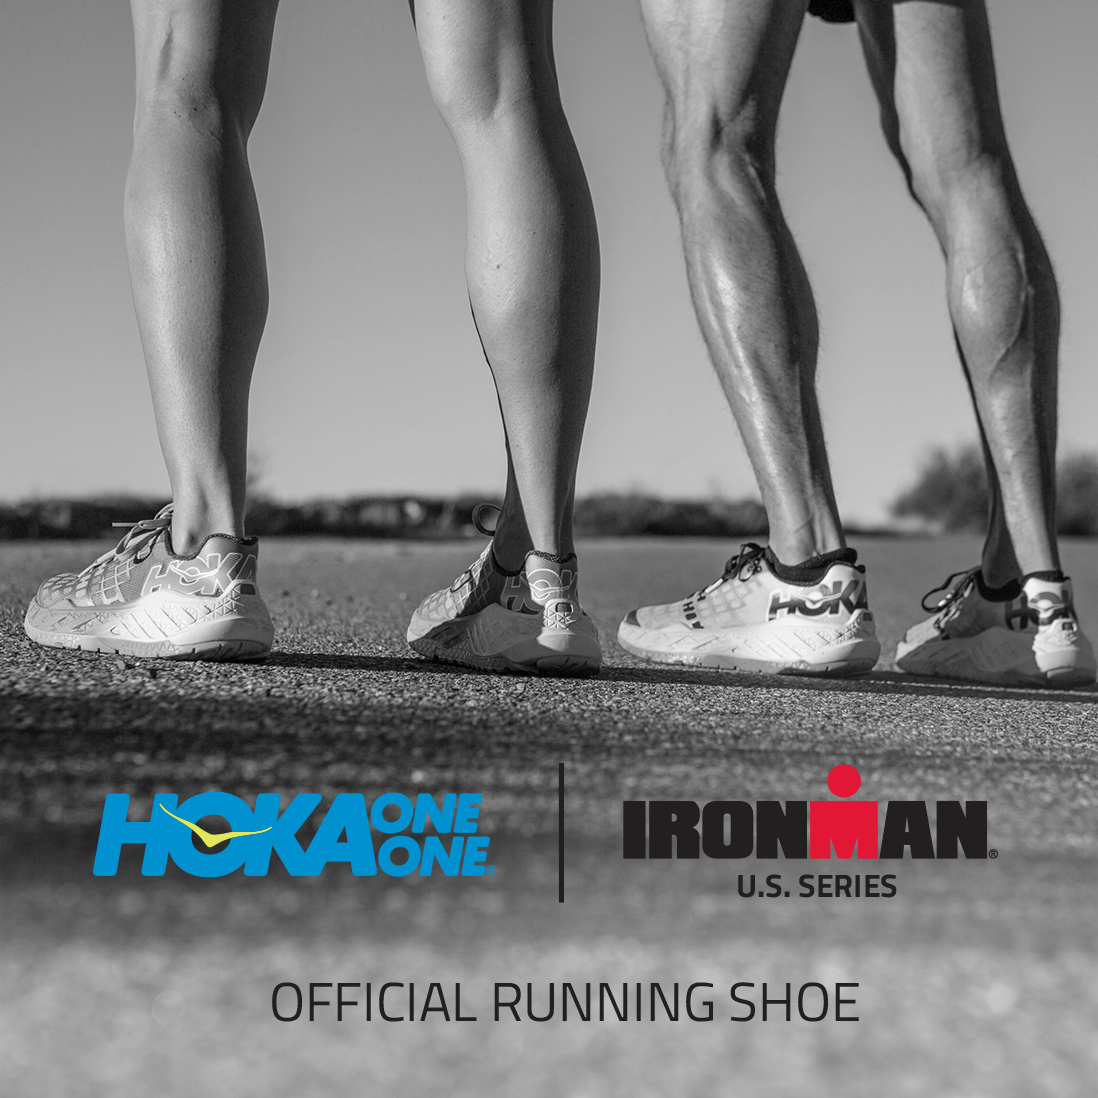 hoka ironman partnership